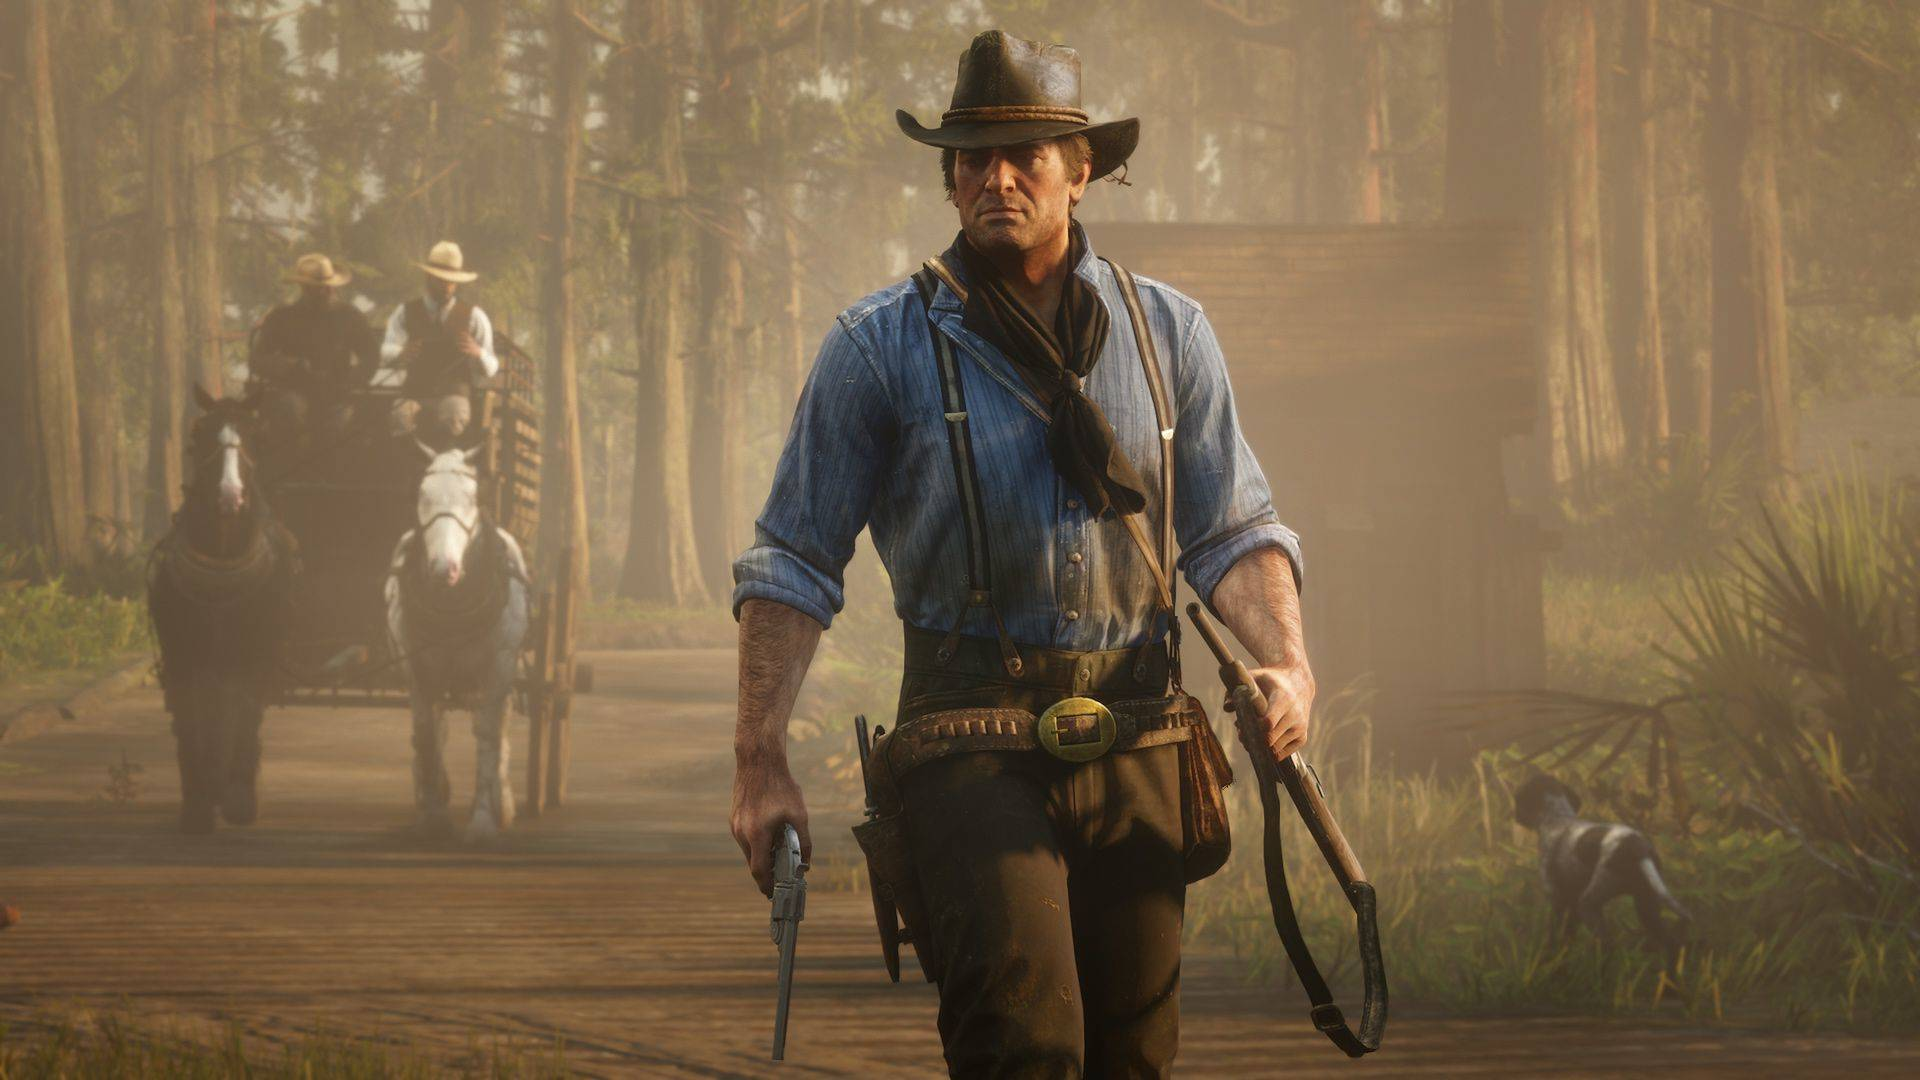 Arthur Morgan from Red Dead Redemption 2 holding a pistol and a rifle